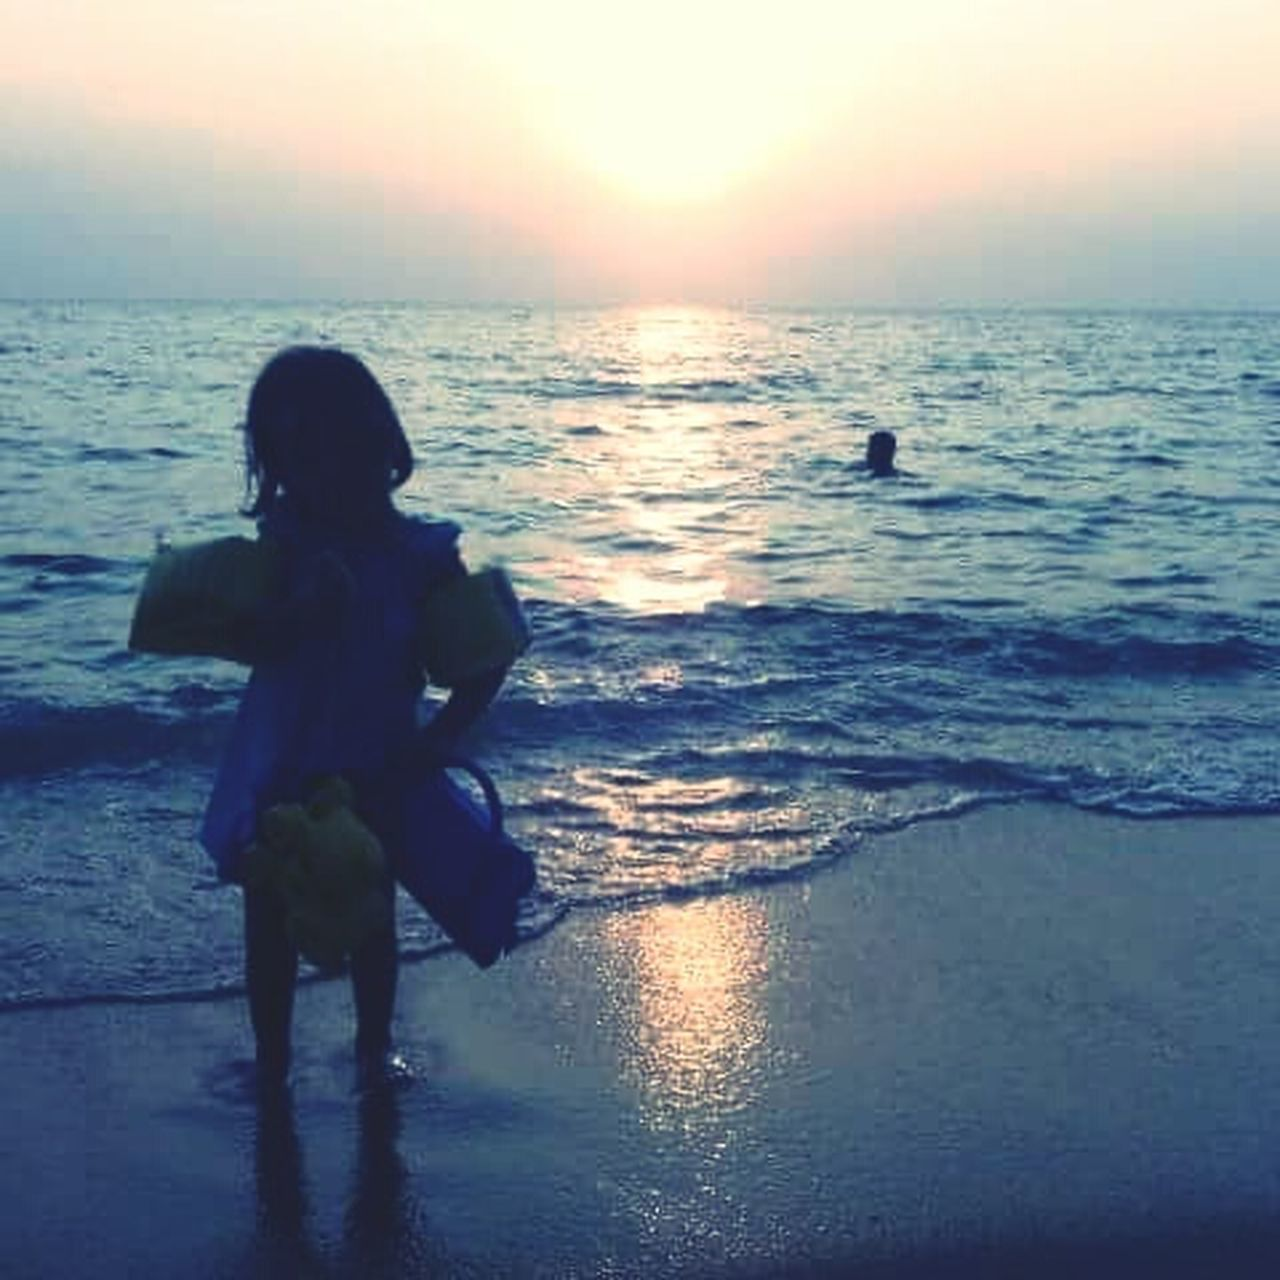 sea, water, beach, real people, sunset, full length, rear view, leisure activity, one person, horizon over water, lifestyles, reflection, nature, walking, beauty in nature, childhood, standing, sand, outdoors, scenics, vacations, ankle deep in water, sky, wave, day, people